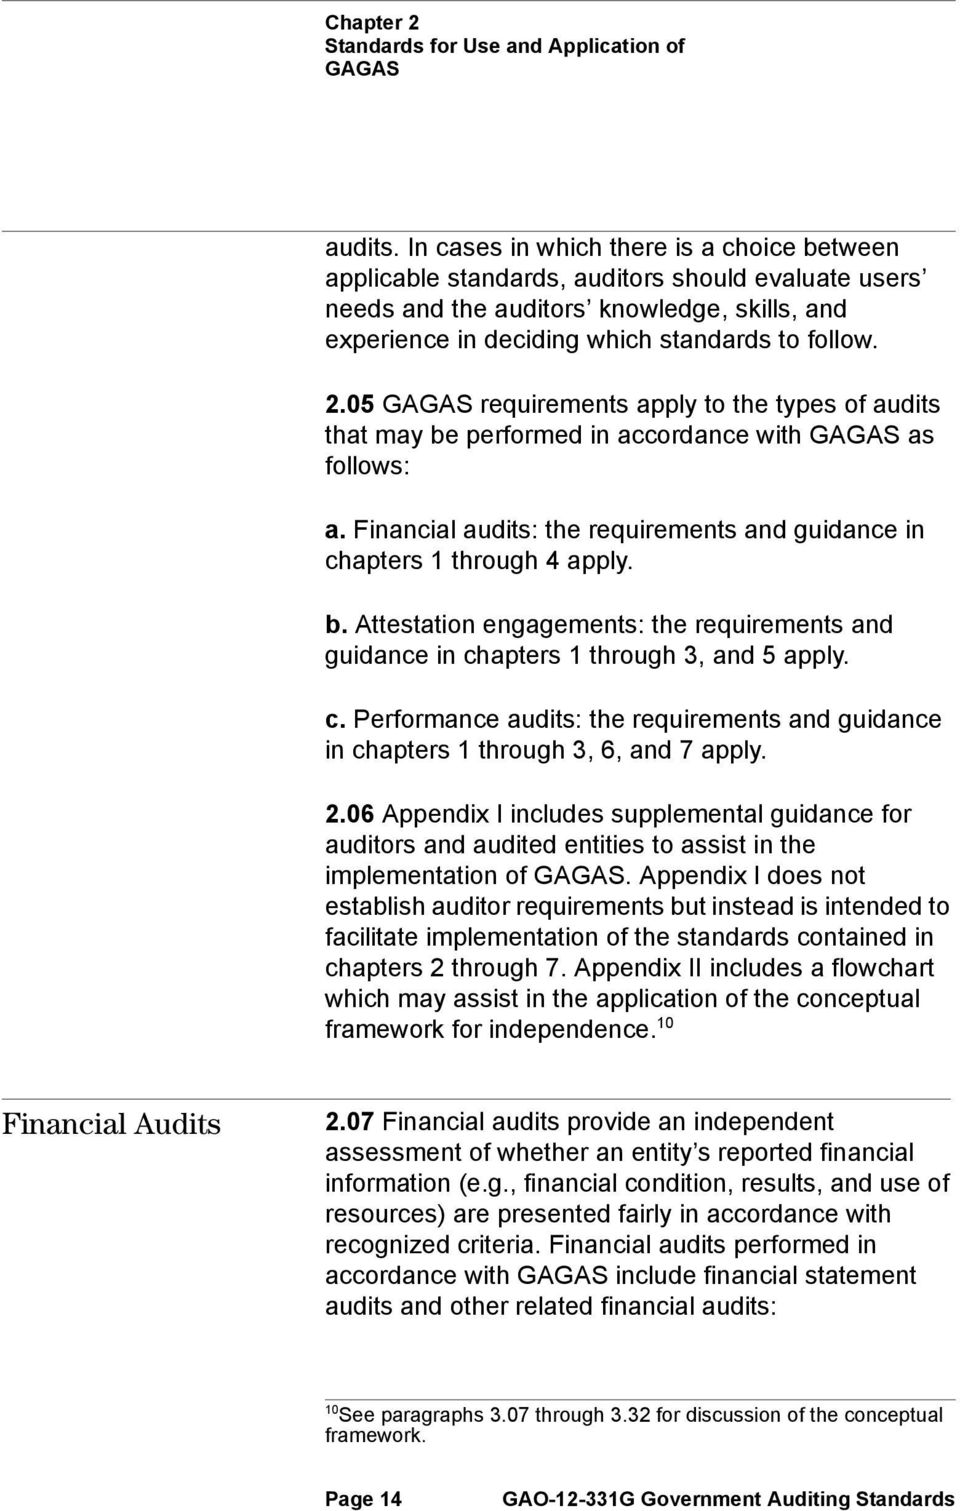 05 GAGAS requirements apply to the types of audits that may be performed in accordance with GAGAS as follows: a. Financial audits: the requirements and guidance in chapters 1 through 4 apply. b. Attestation engagements: the requirements and guidance in chapters 1 through 3, and 5 apply.